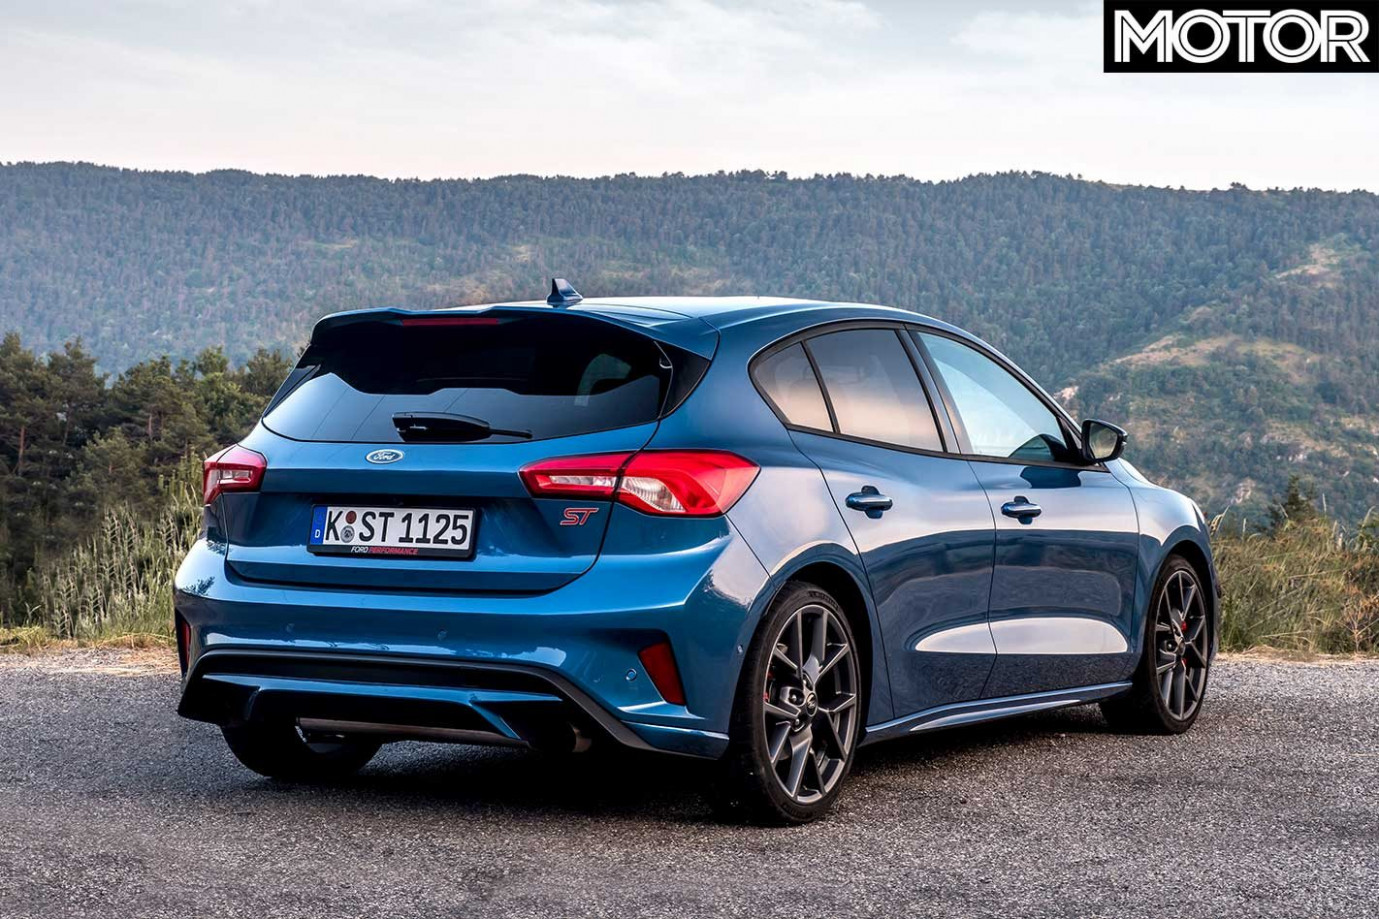 11 Ford Focus ST first drive performance review - 2020 ford hatchback